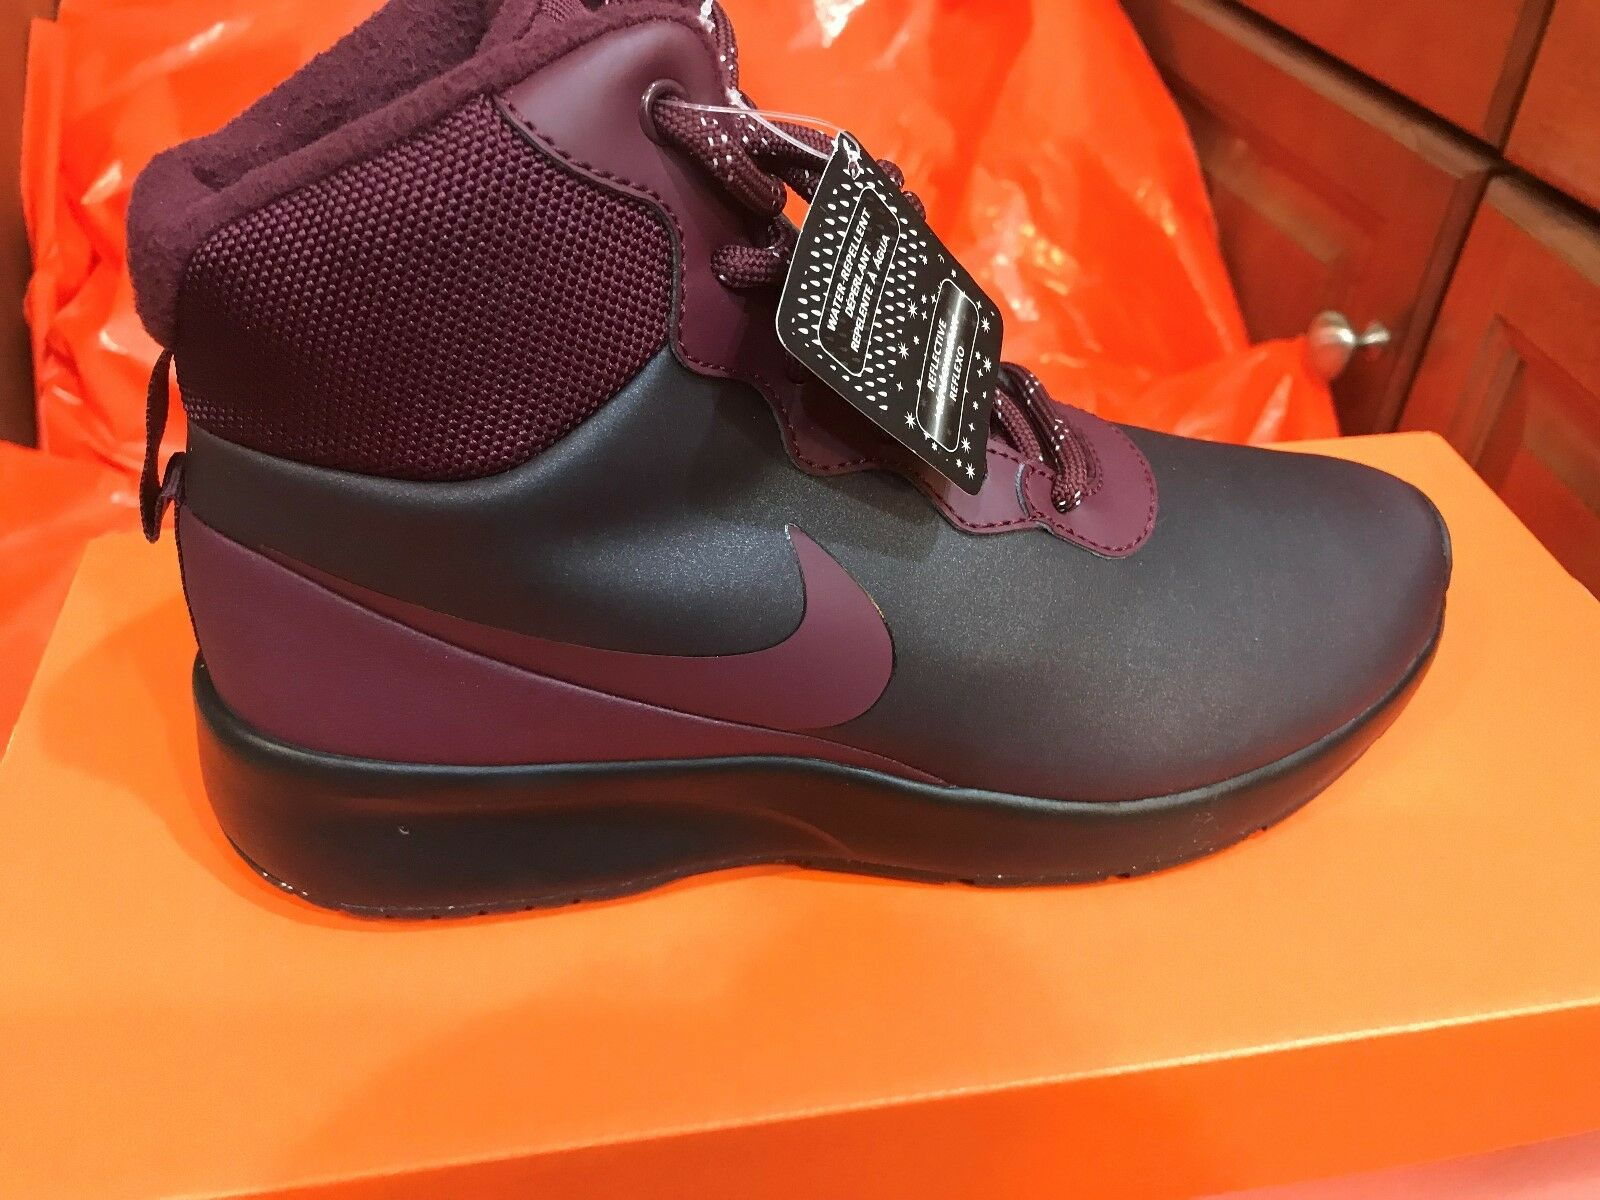 Nike Tanjun High Winter Sneaker 861672 001 SIZE 7 BLACK/BURGUNDY FREE SHIP